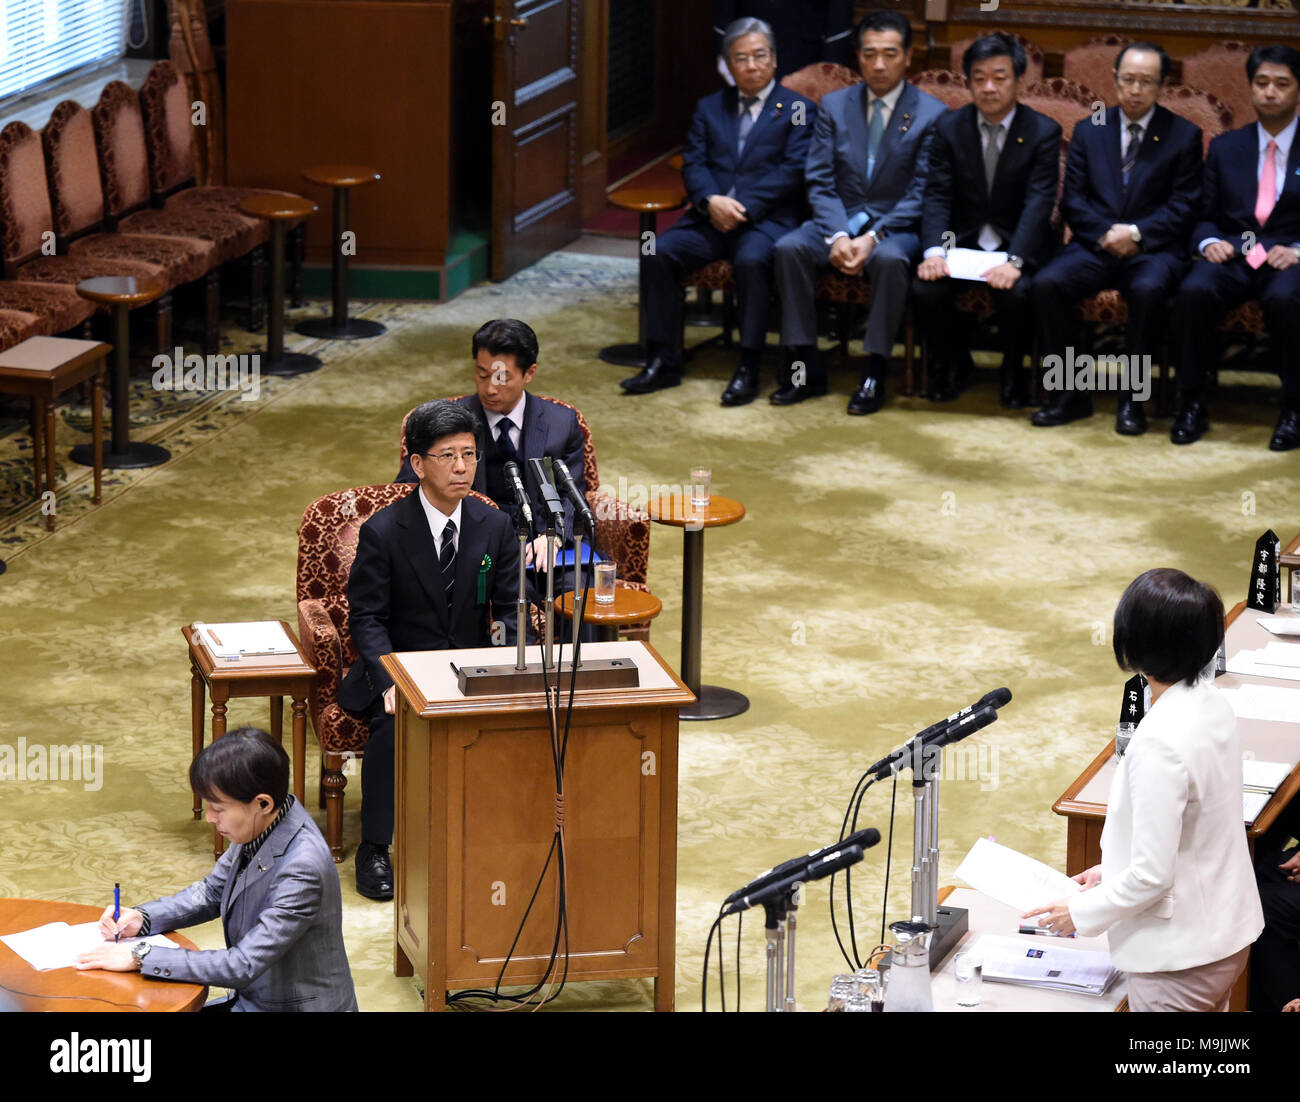 (180327) -- TOKYO, March 27, 2018 (Xinhua) -- Former head of the National Tax Agency Nobuhisa Sagawa (C L) appears as a sworn witness in the Diet, Japan's bicameral legislature, in Tokyo, Japan, March 27, 2018. A key figure in a document-tampering scandal involving Japan's Finance Ministry appeared in the Diet on Tuesday to give sworn testimony over the falsification of government documents related to the heavily discounted sale of state land to a nationalist school operator. Former national tax agency head Nobuhisa Sagawa, who was previously in charge of taking care of the land sale, stepped  - Stock Image